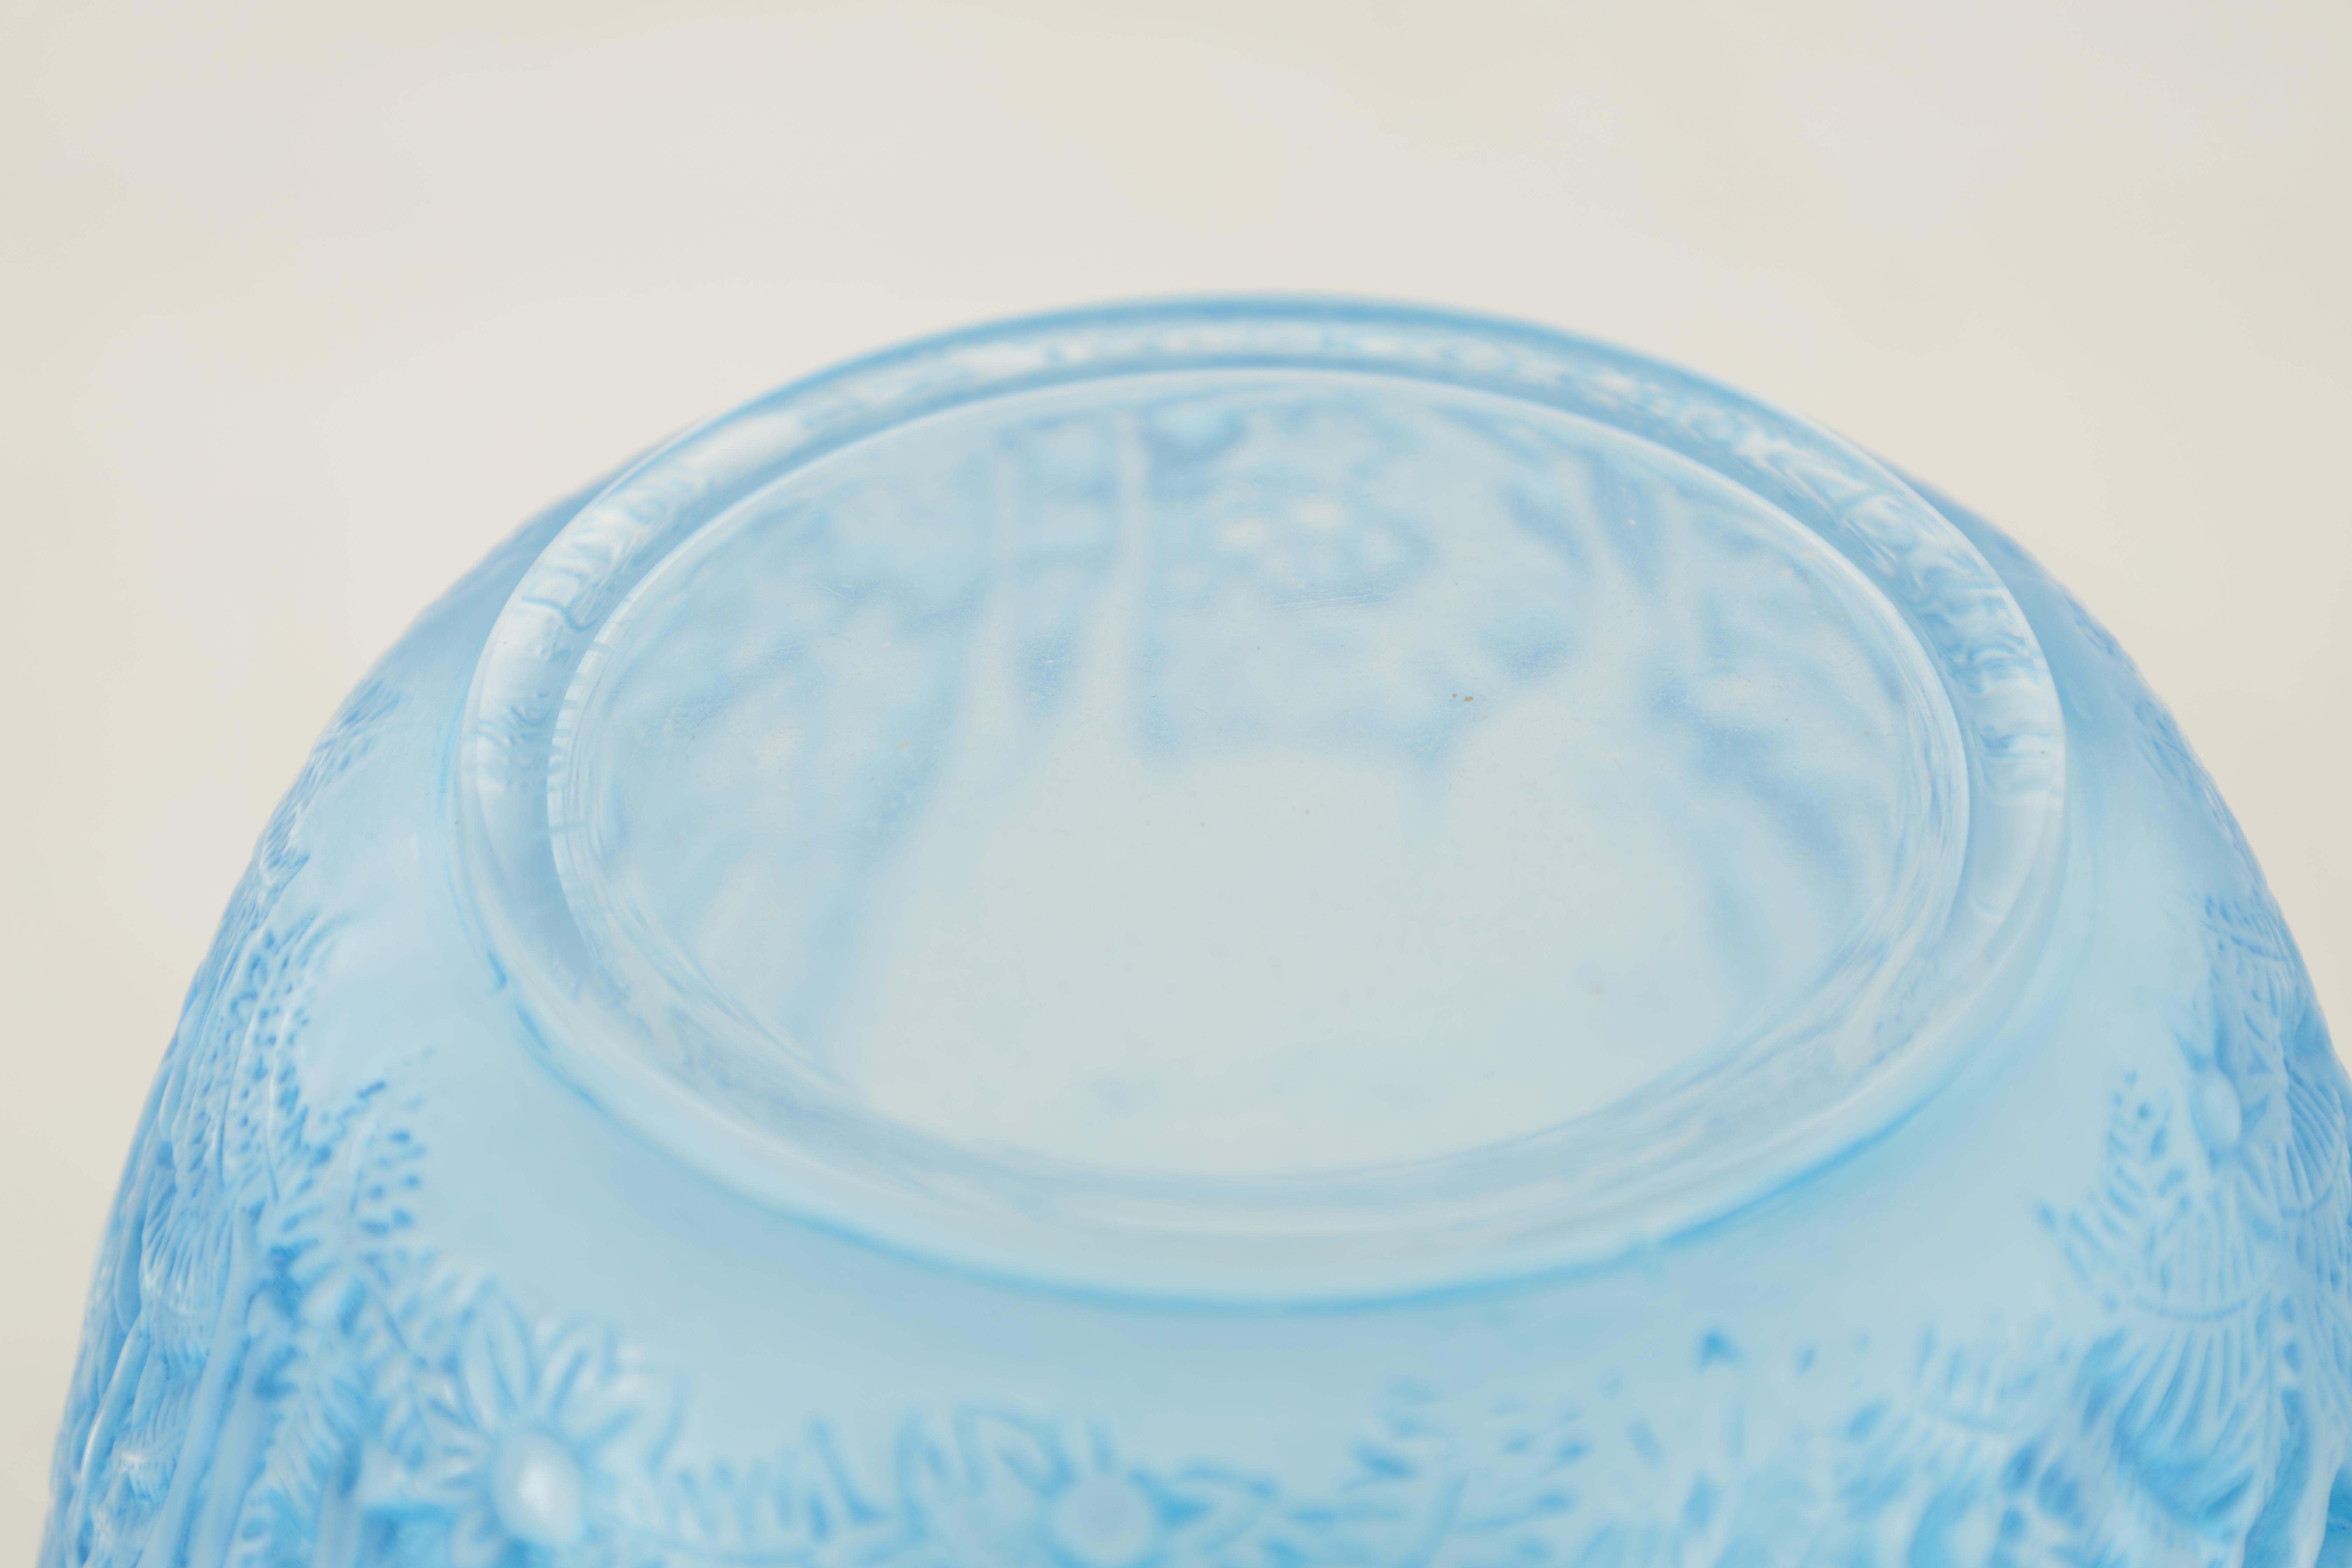 R LALIQUE, A BLUE STAINED 'BICHES' GLASS VASE of ovoid form with inward curved rim and collared neck - Image 5 of 7